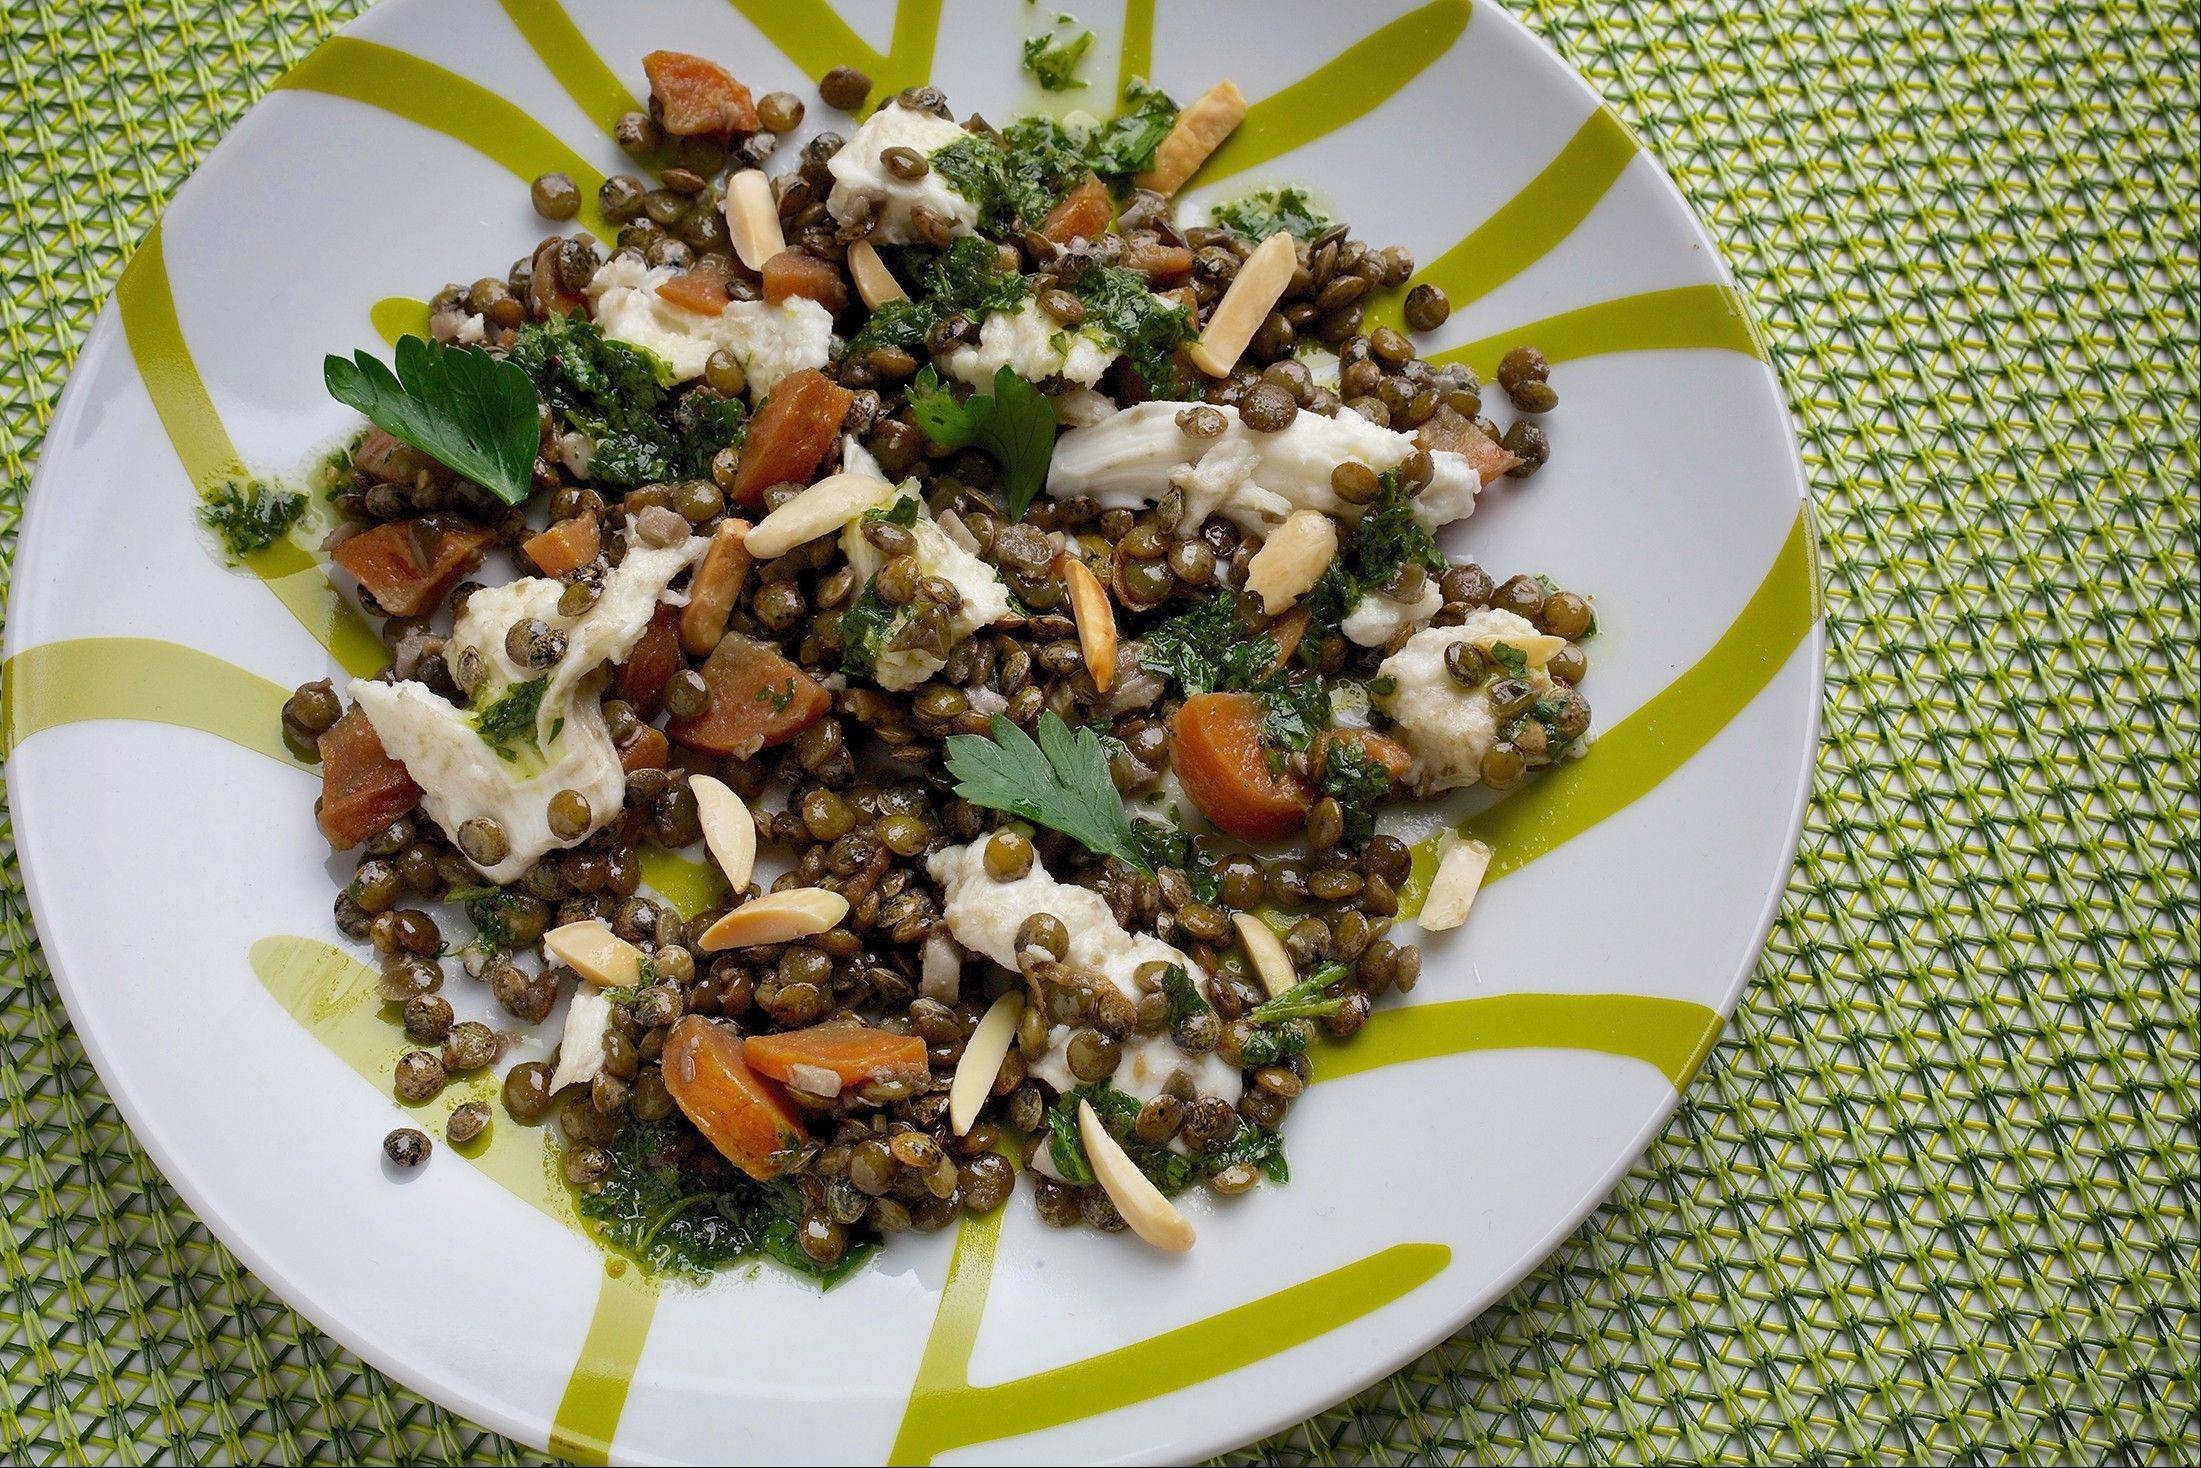 Creamy, fresh mozzarella pairs well with earthy lentils, sharpened with a vinaigrette.